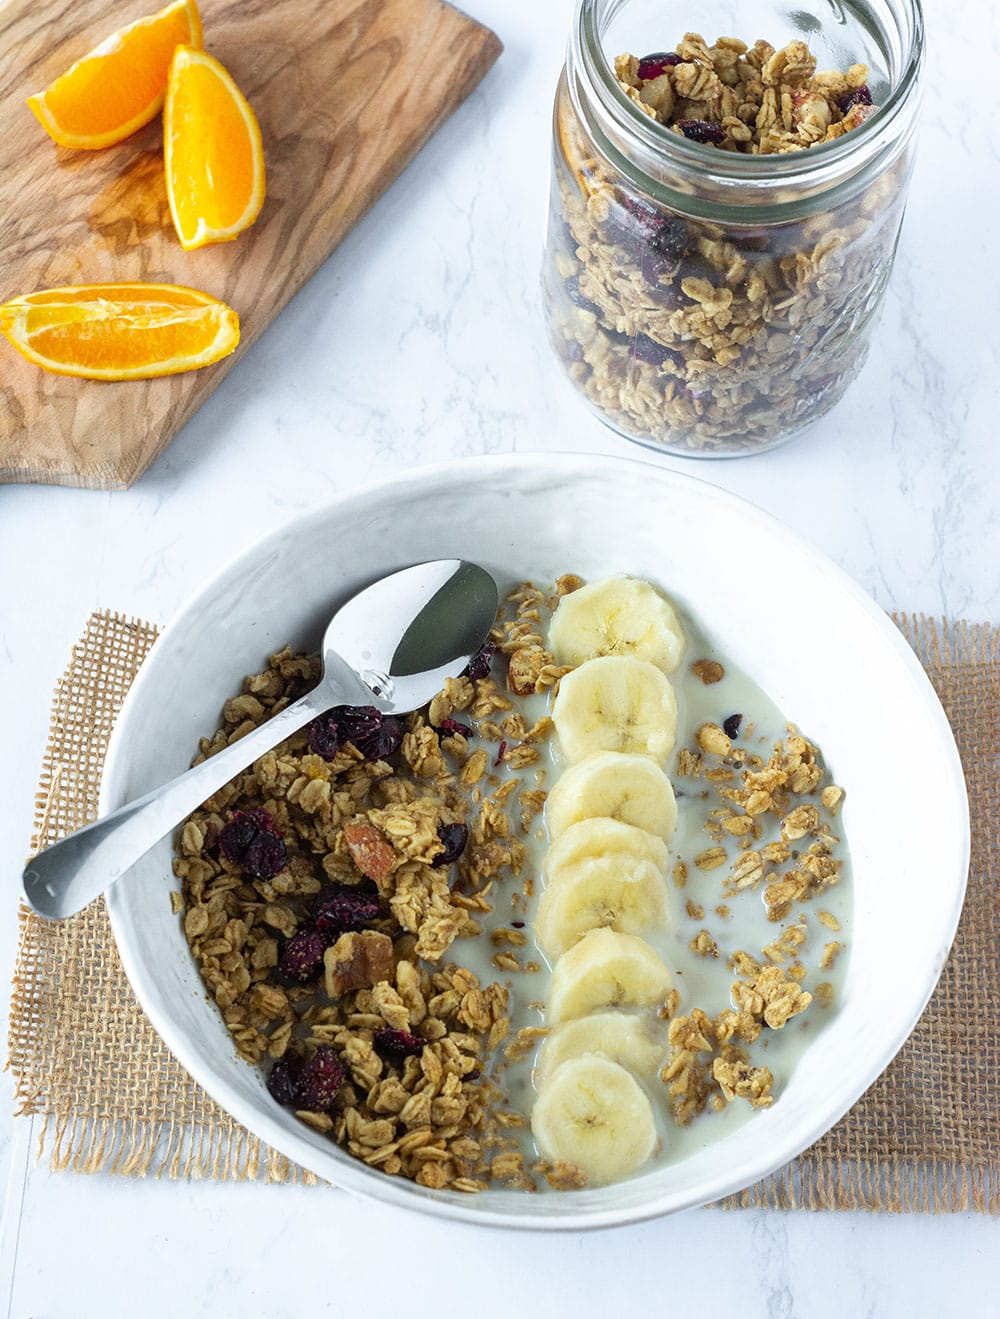 overlay gluten-free granola in a white bowl, with banana slices, orange cardamon flavor on a white marble with burlap napkin